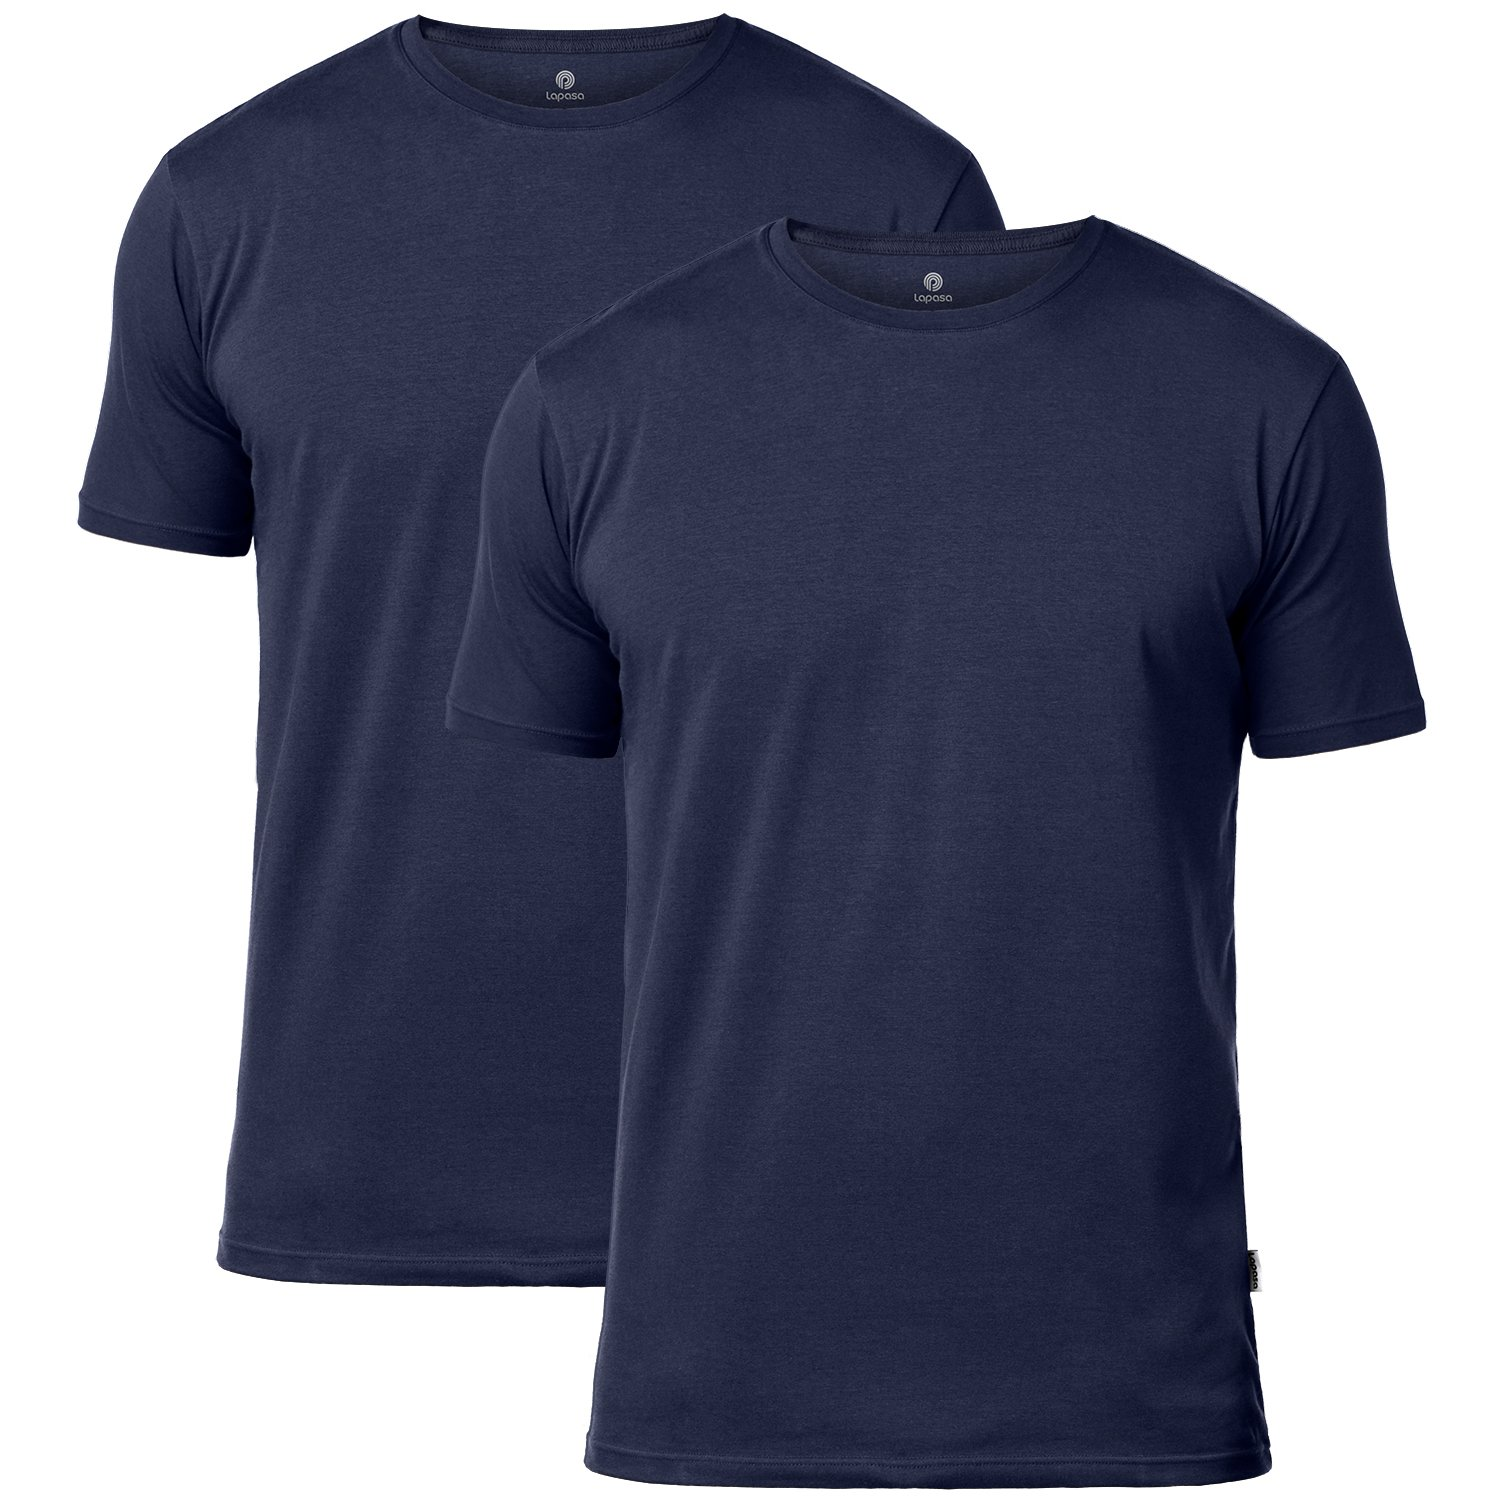 18acb1a9a LAPASA Men's Short Sleeve Cotton Stretch Undershirts V-Neck/Crew Neck T- Shirts Solid Plain Tees 2 Pack M06 at Amazon Men's Clothing store: